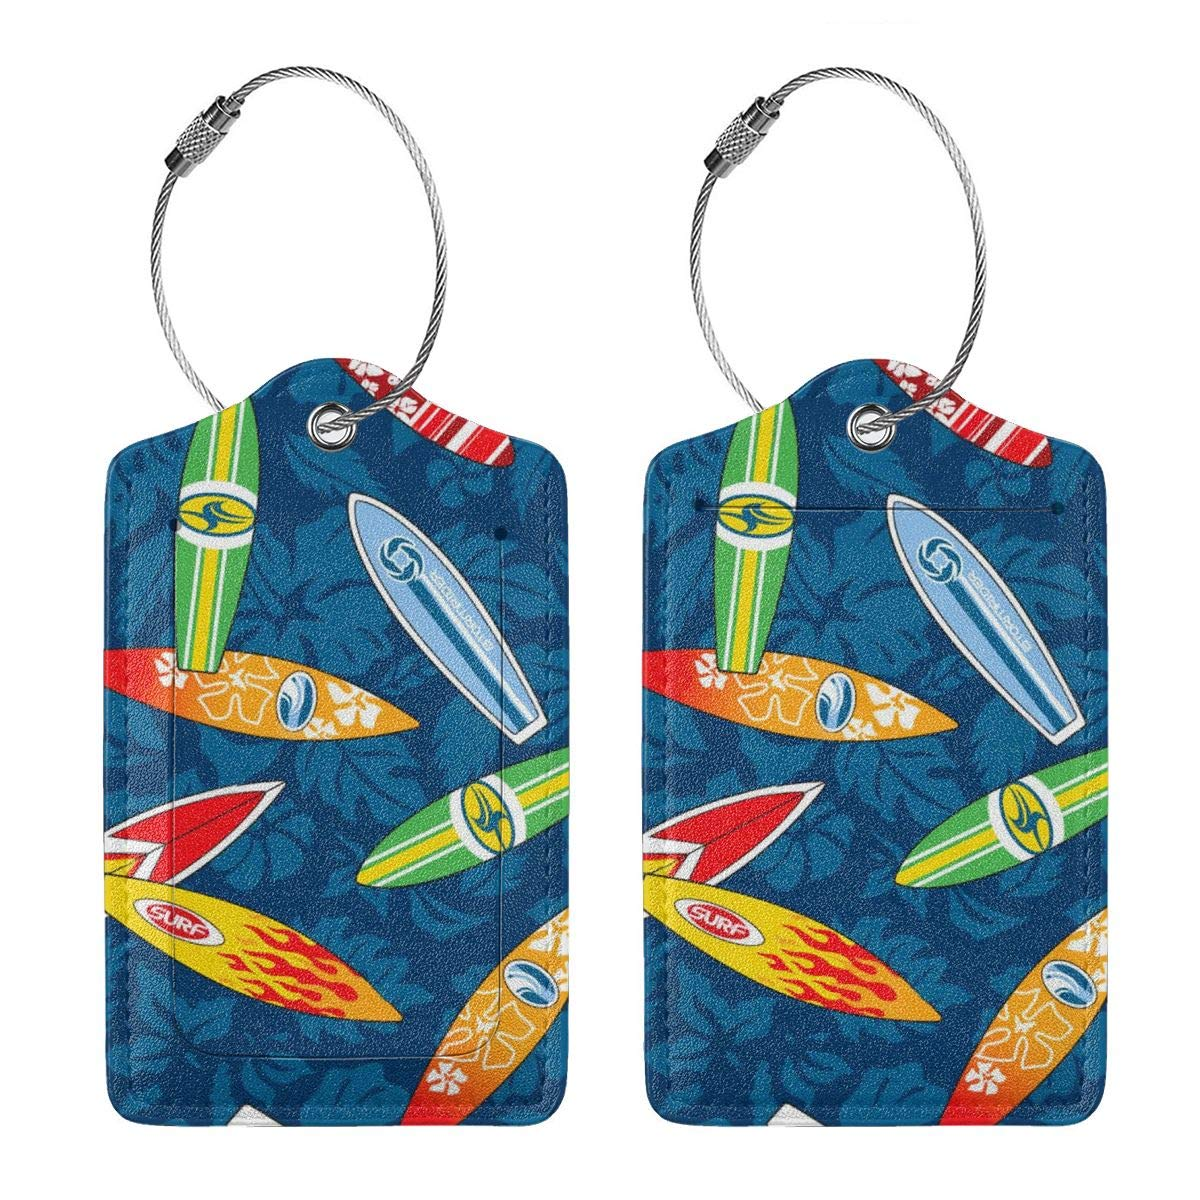 Various Surfboard Leather Luggage Tags Personalized Extra Address Cards With Adjustable Strap